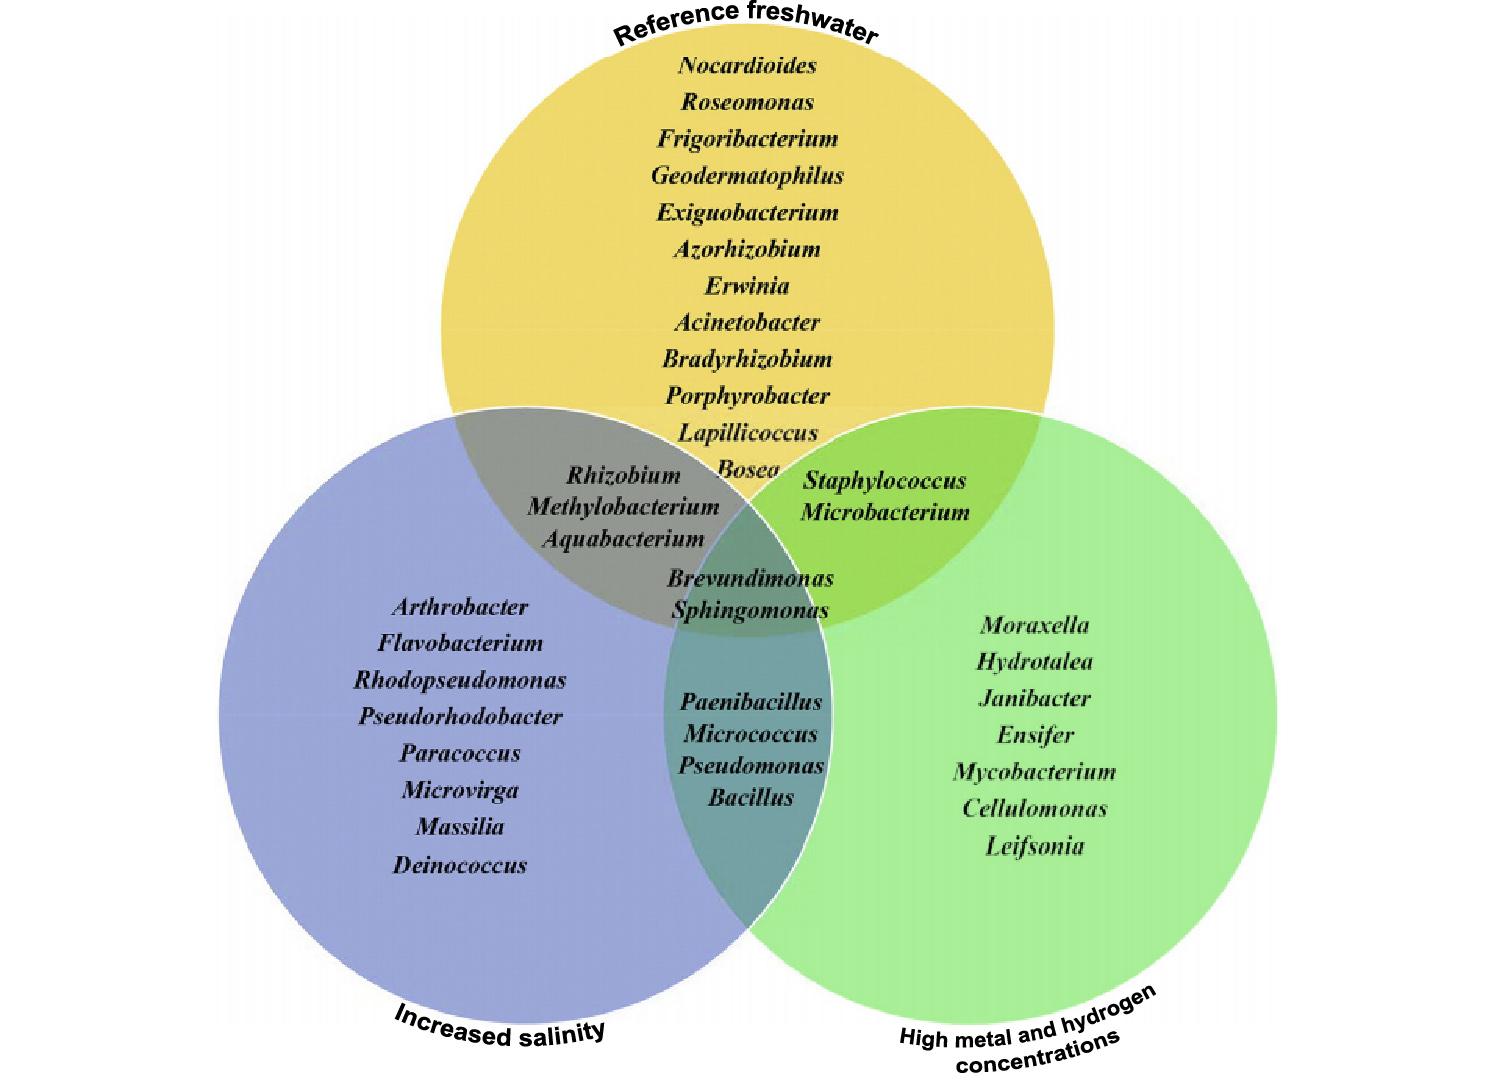 Can environmental factors influence amphibians skin bacterial venn diagram showing the bacterial genera unique andor shared between frog populations the core bacterial genera included brevundimonas and sphingomonas pooptronica Gallery